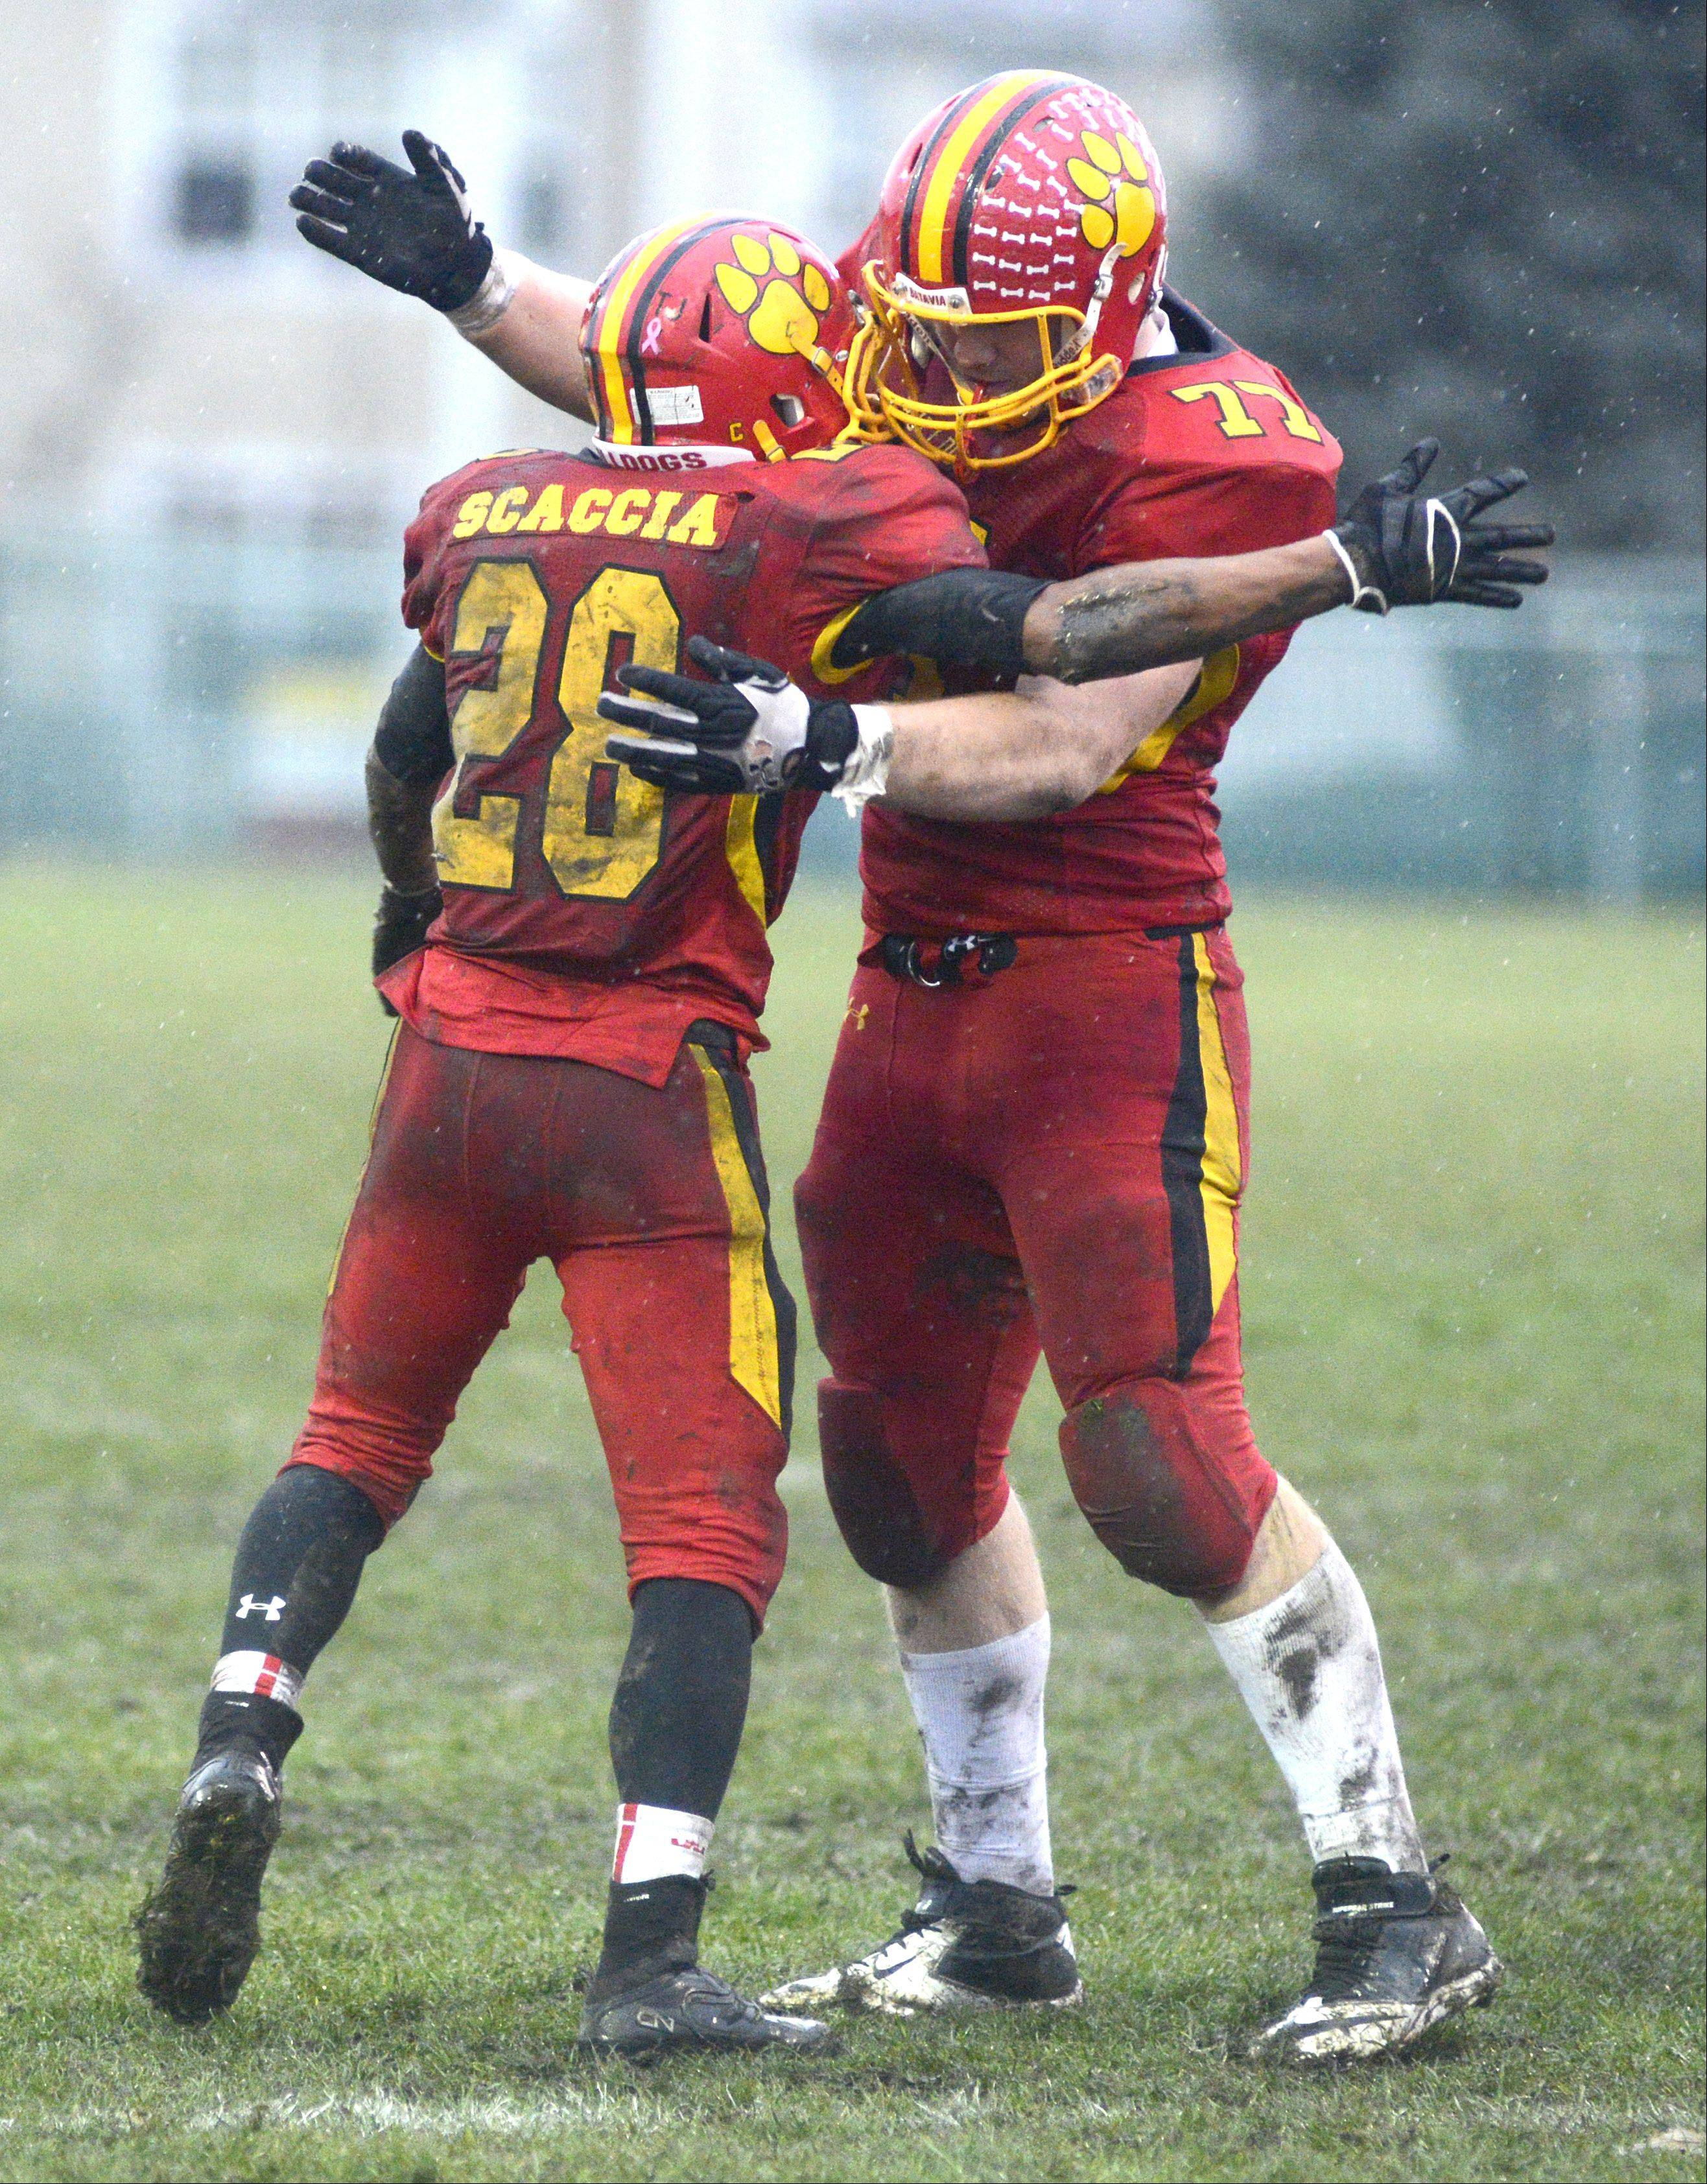 Batavia's Anthony Scaccia and Jack Breshears embrace on the field as the seconds tick down to their victory over Lake Forest in the Class 6A quarterfinal on Saturday, November 16.